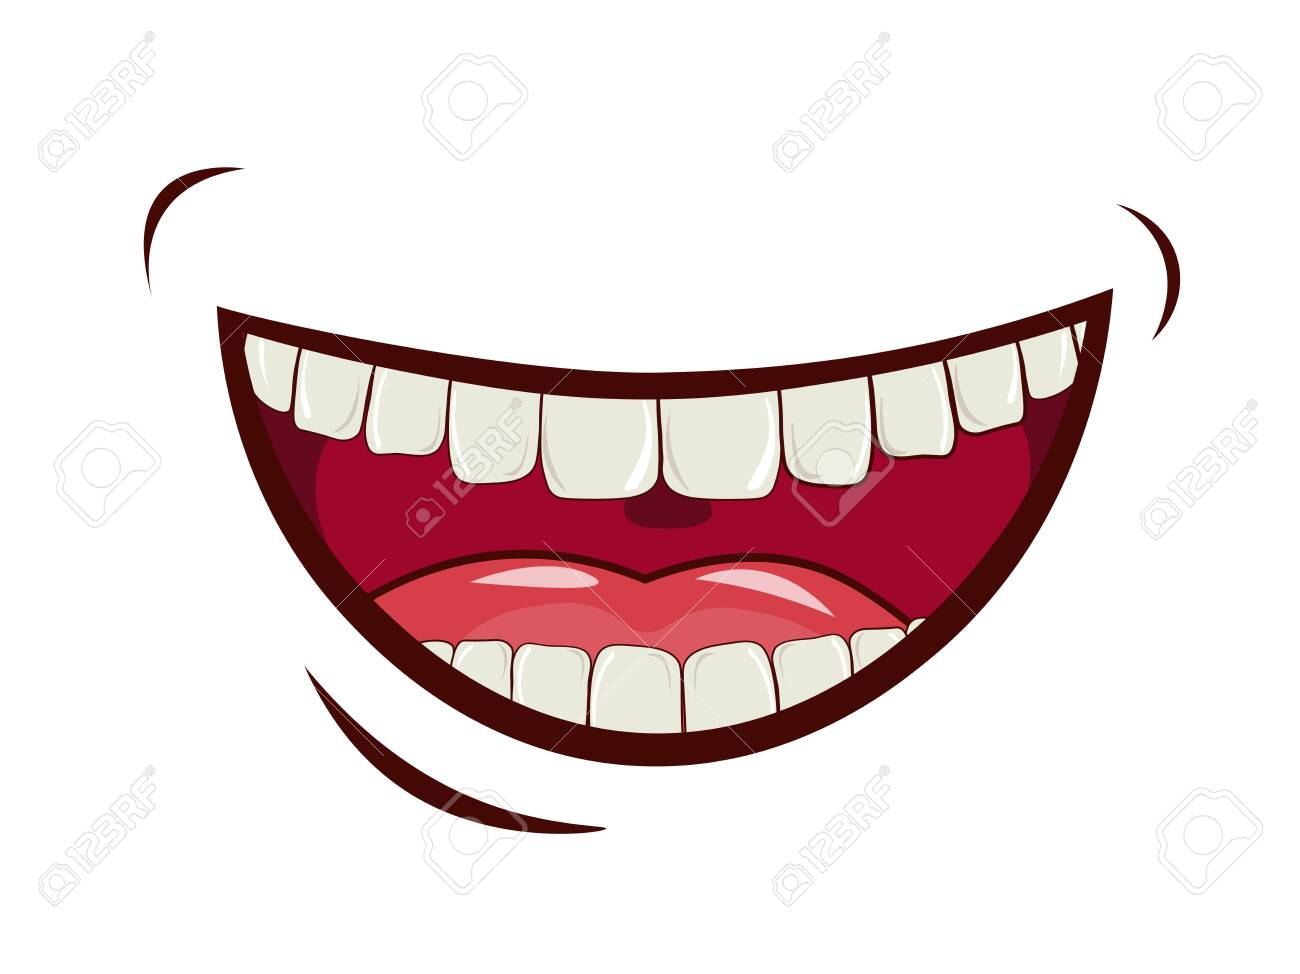 Charming smile, emotional expression of feelings, laughter, joy. Wide open mouth, upper and lower jaw, oral cavity with tongue. Caring for a healthy oral cavity, white teeth. vector image. - 149968527